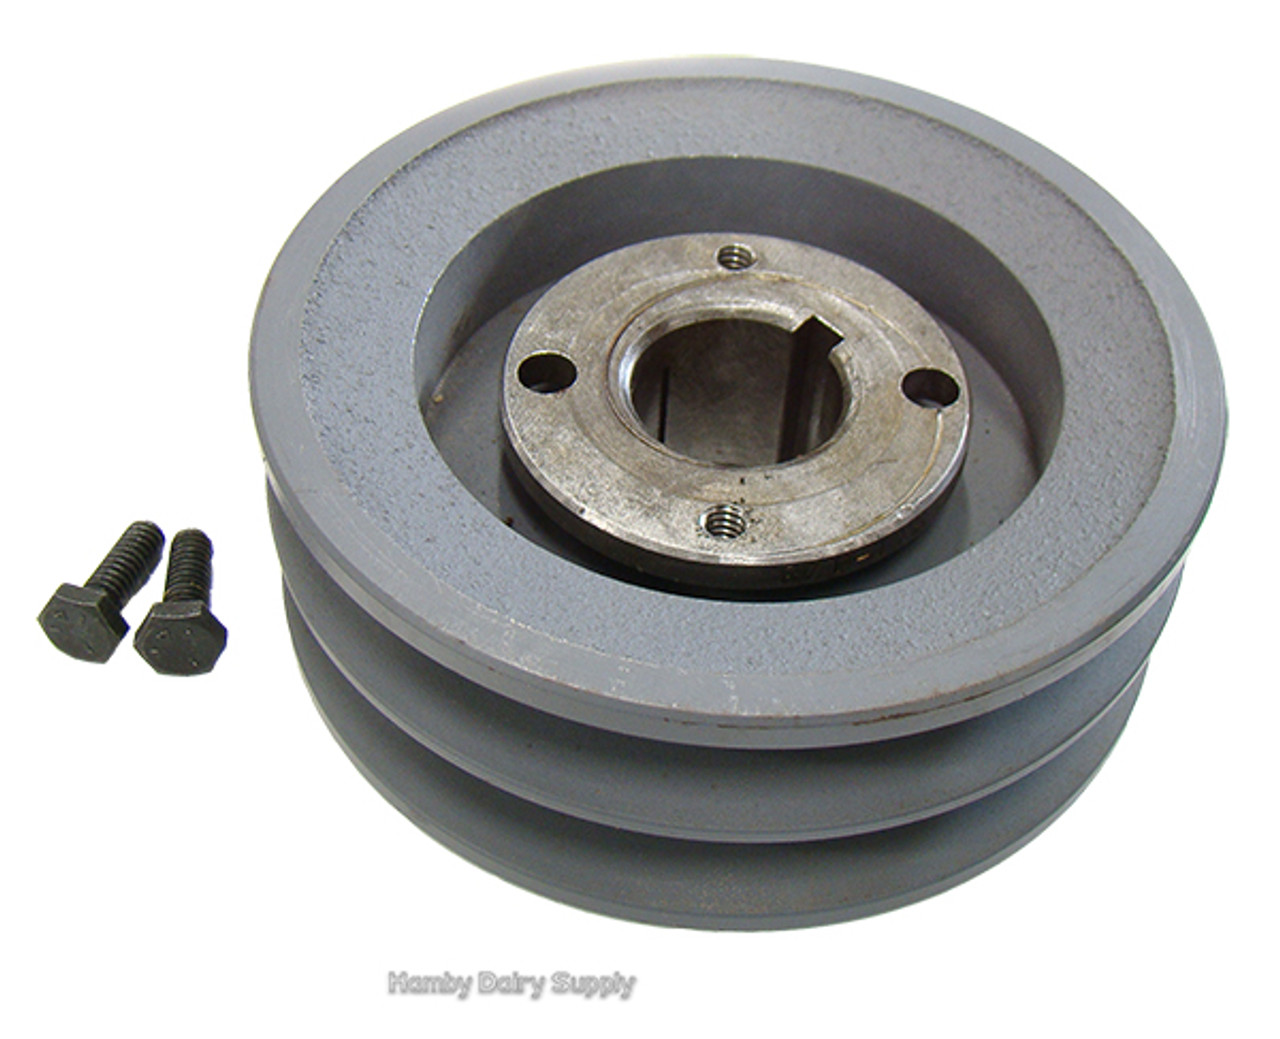 Alamo Motor Pulley Sheave for 4.5 or 5.0 hp motor Fits 75+ only - Hamby Dairy Supply